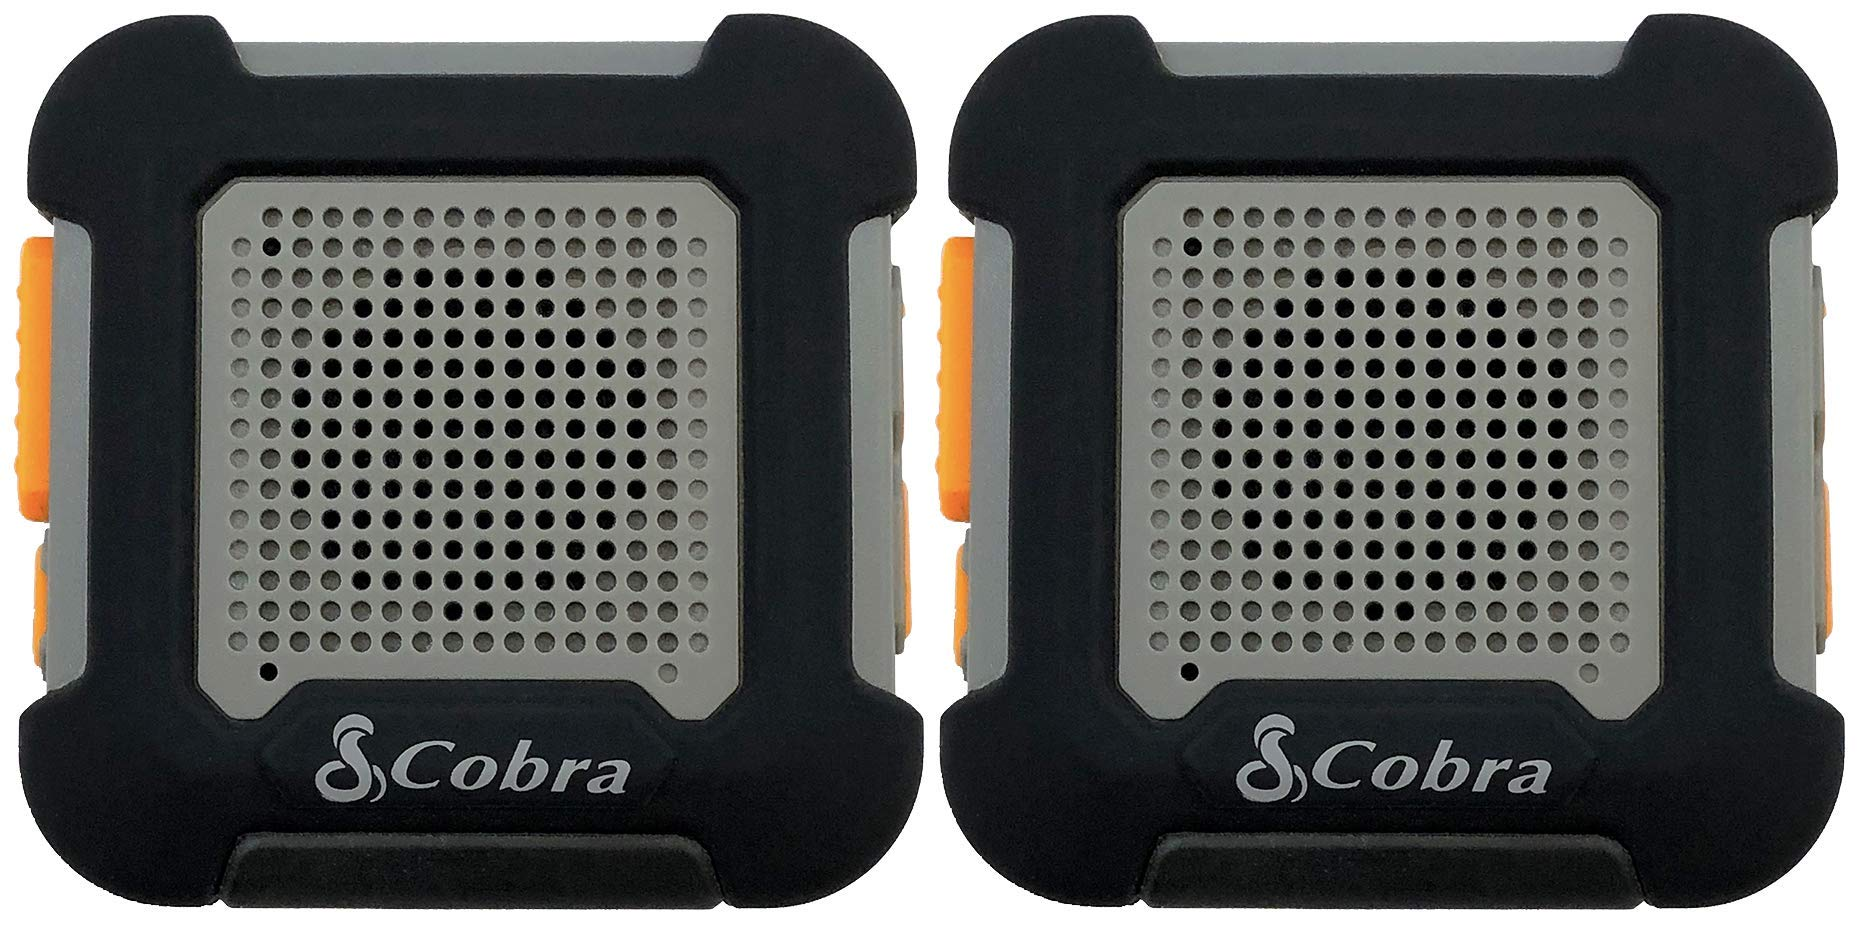 Cobra ACT220B Wearable Walkie Talkies Chat Tag Rock Hands Free 12-Mile Radios (Pair)